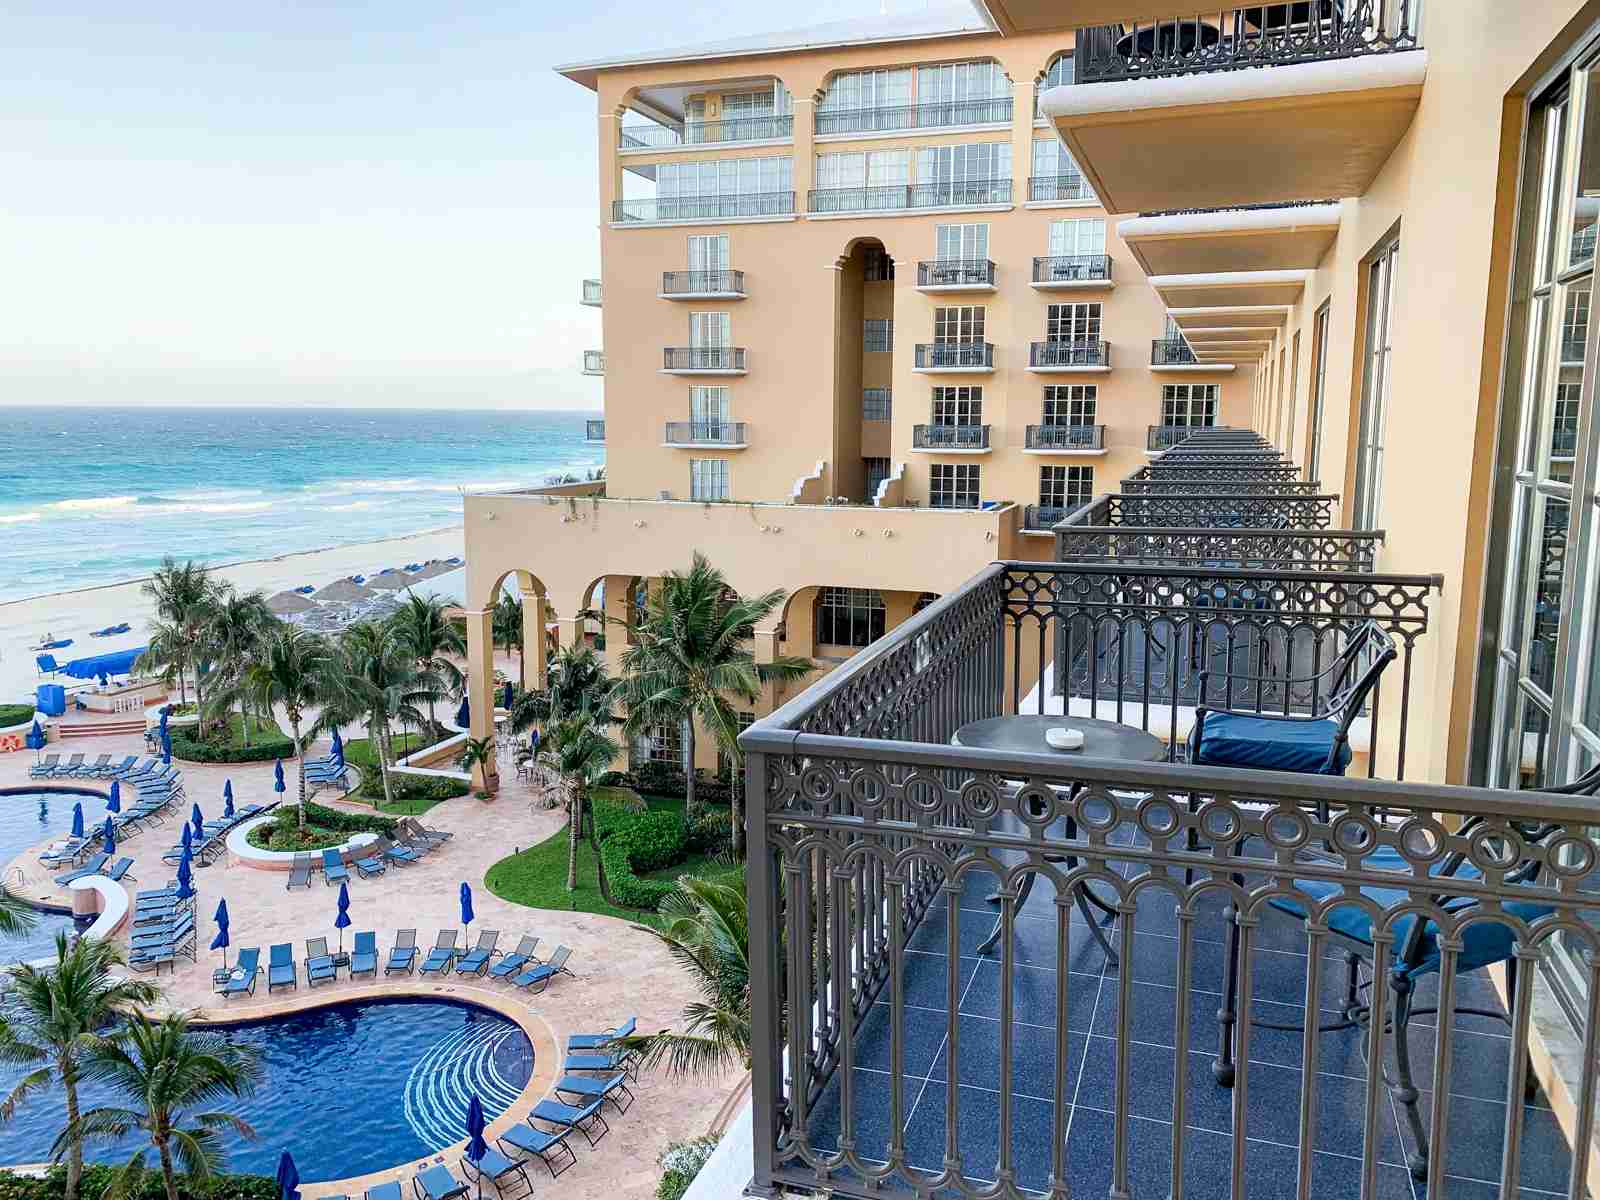 Photo of Ritz-Carlton Cancun by Zach Griff/The Points Guy